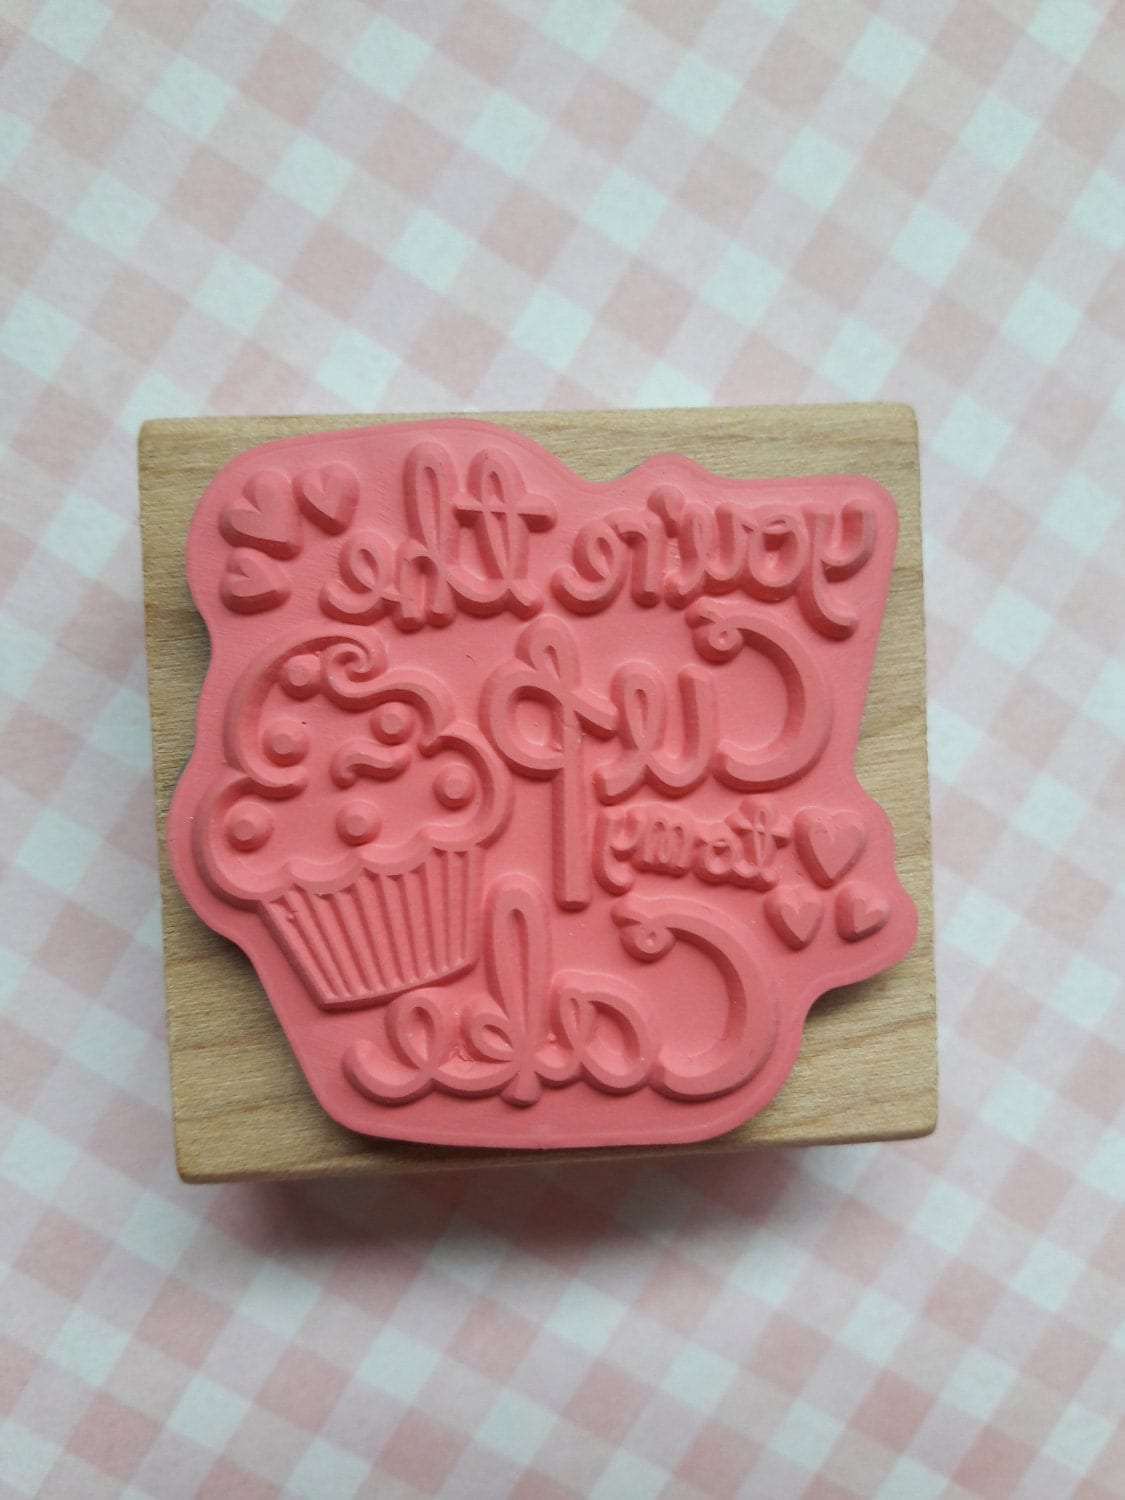 Rubber stamp craft supplies - You Re The Cup To My Cake Wood Mounted Rubber Stamp Craft Supplies